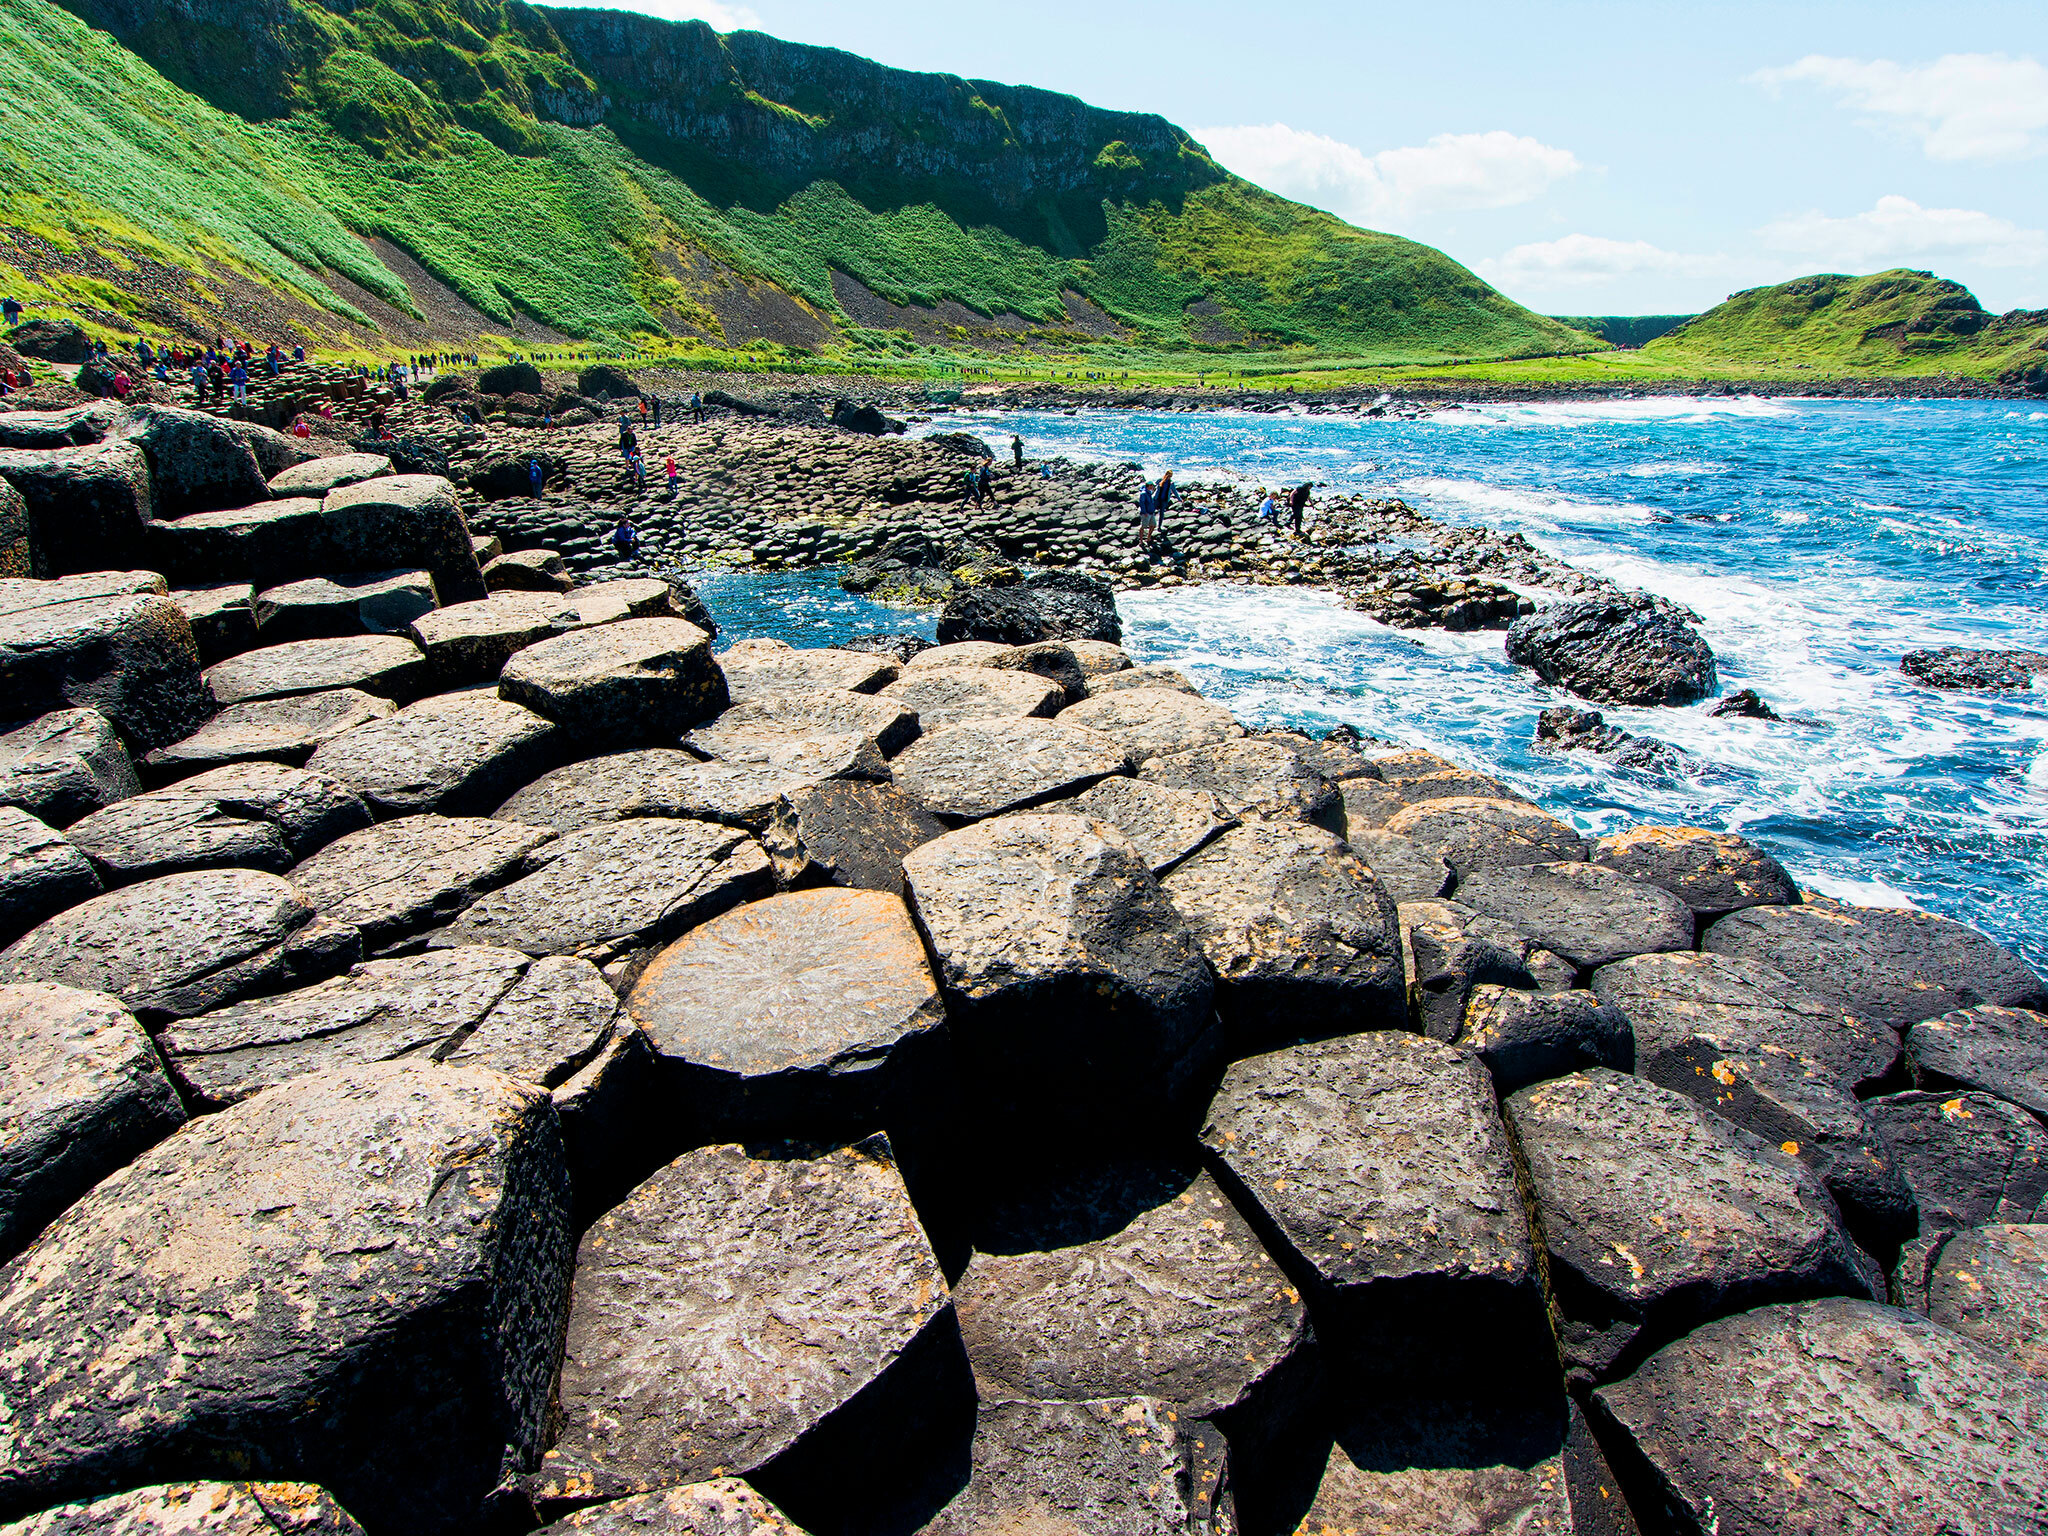 Day trip to the Giant's Causeway